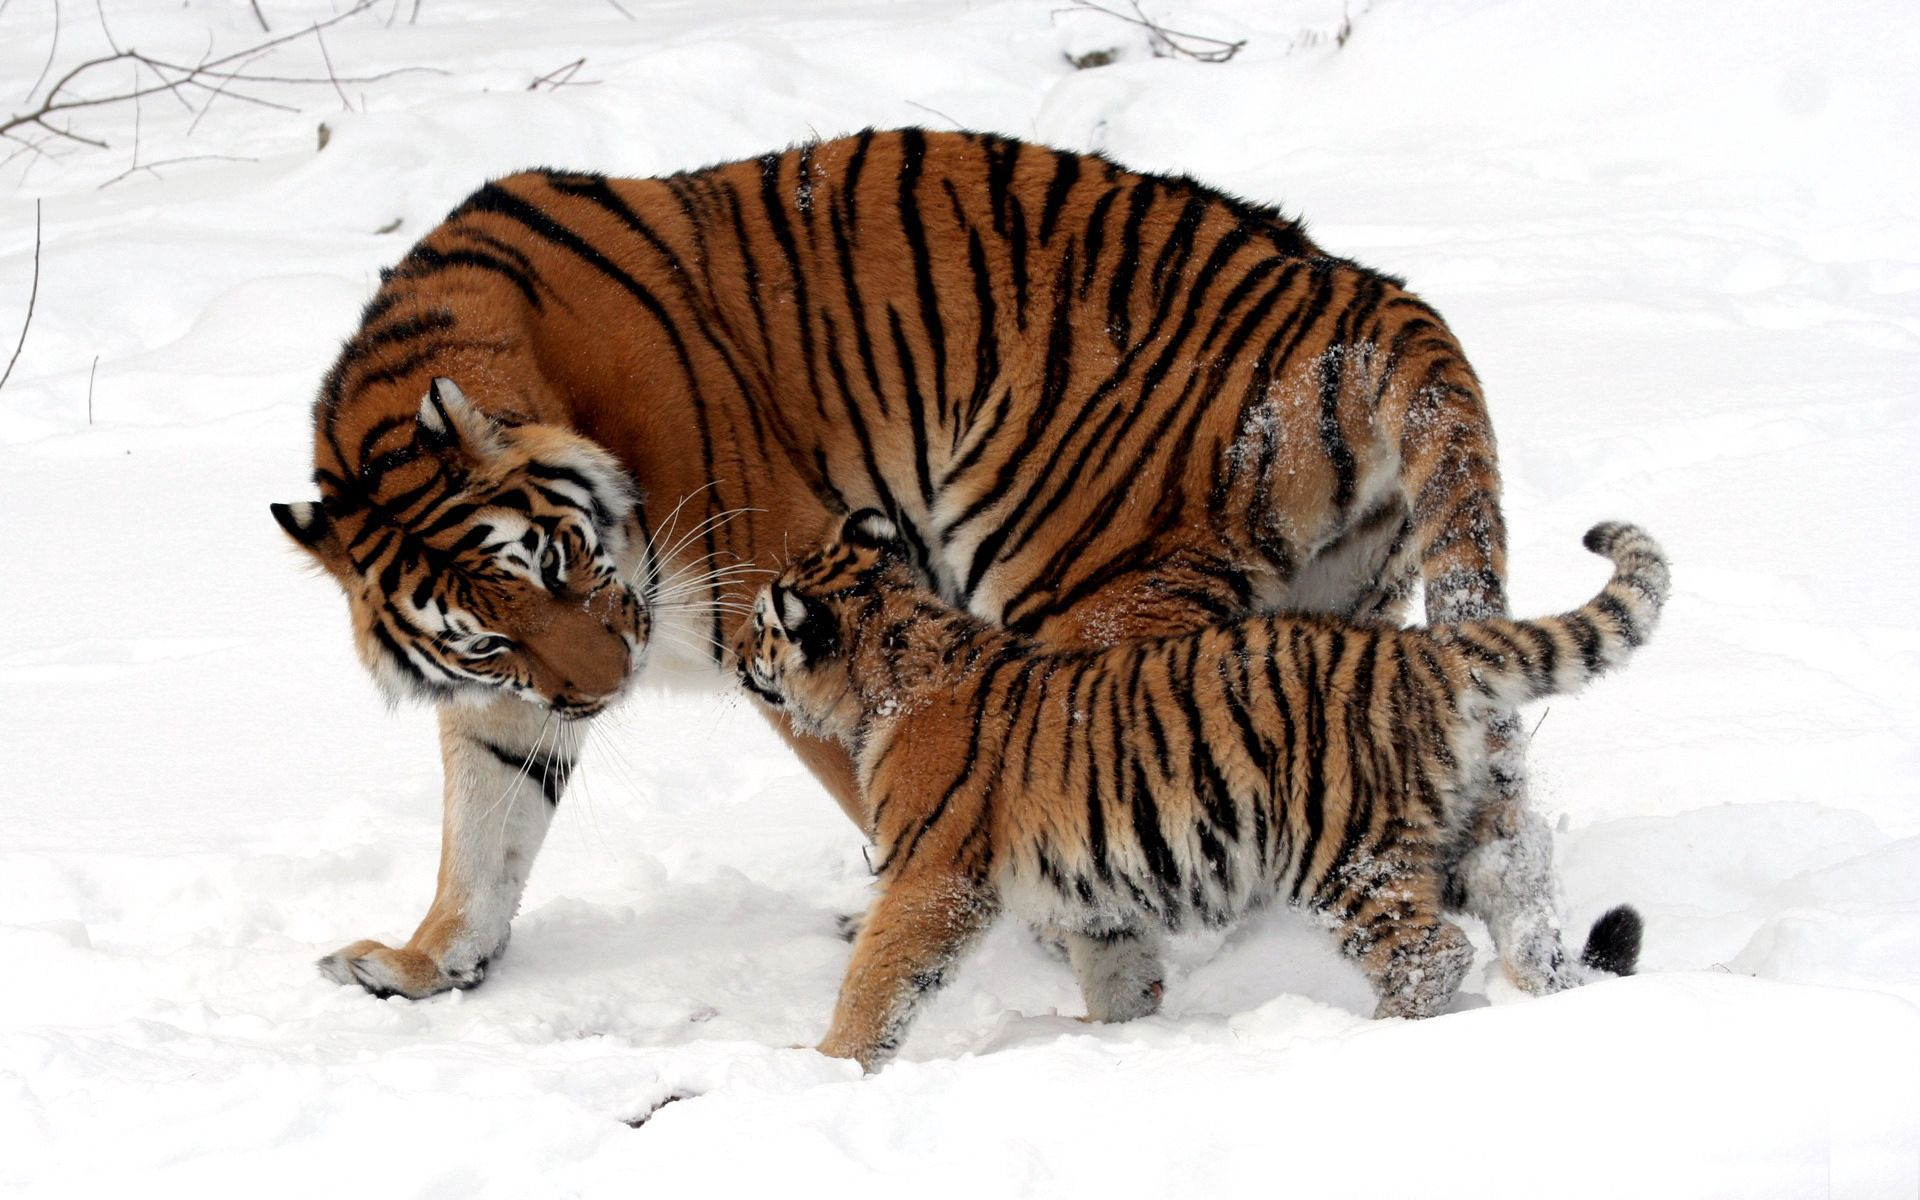 138859 download wallpaper Animals, Young, Joey, Tiger, Tiger Cub, Snow, Play screensavers and pictures for free